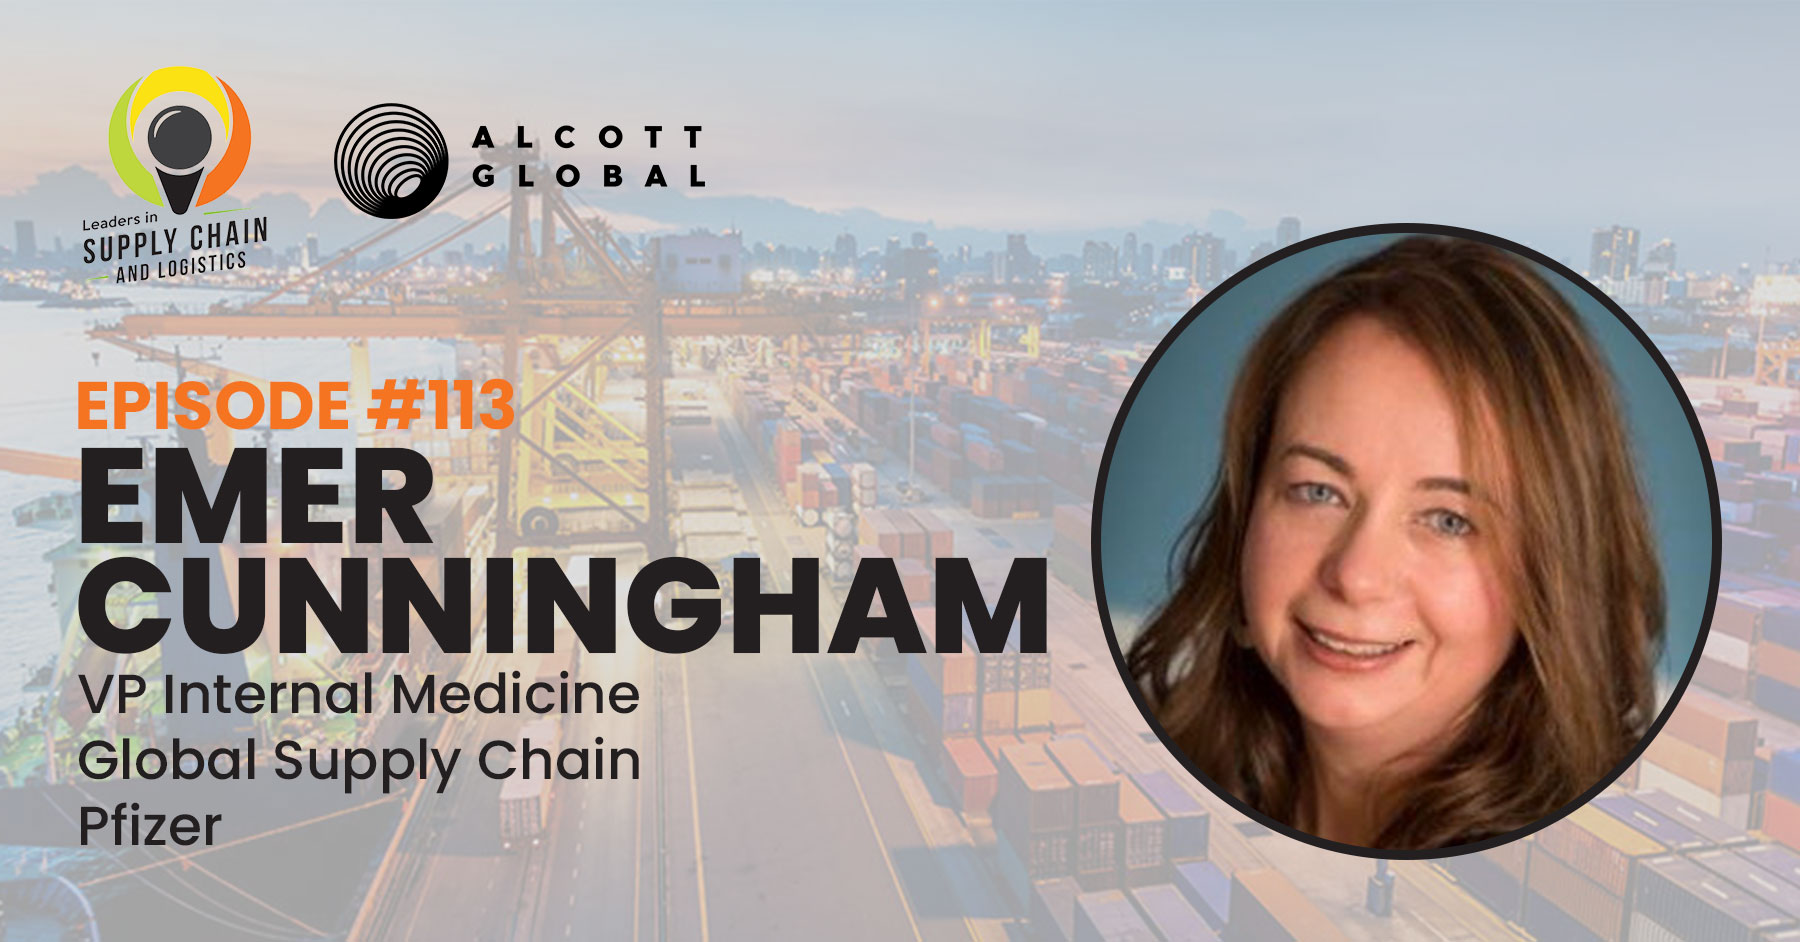 #113: Emer Cunningham, VP Internal Medicine Global Supply Chain at Pfizer Featured Image